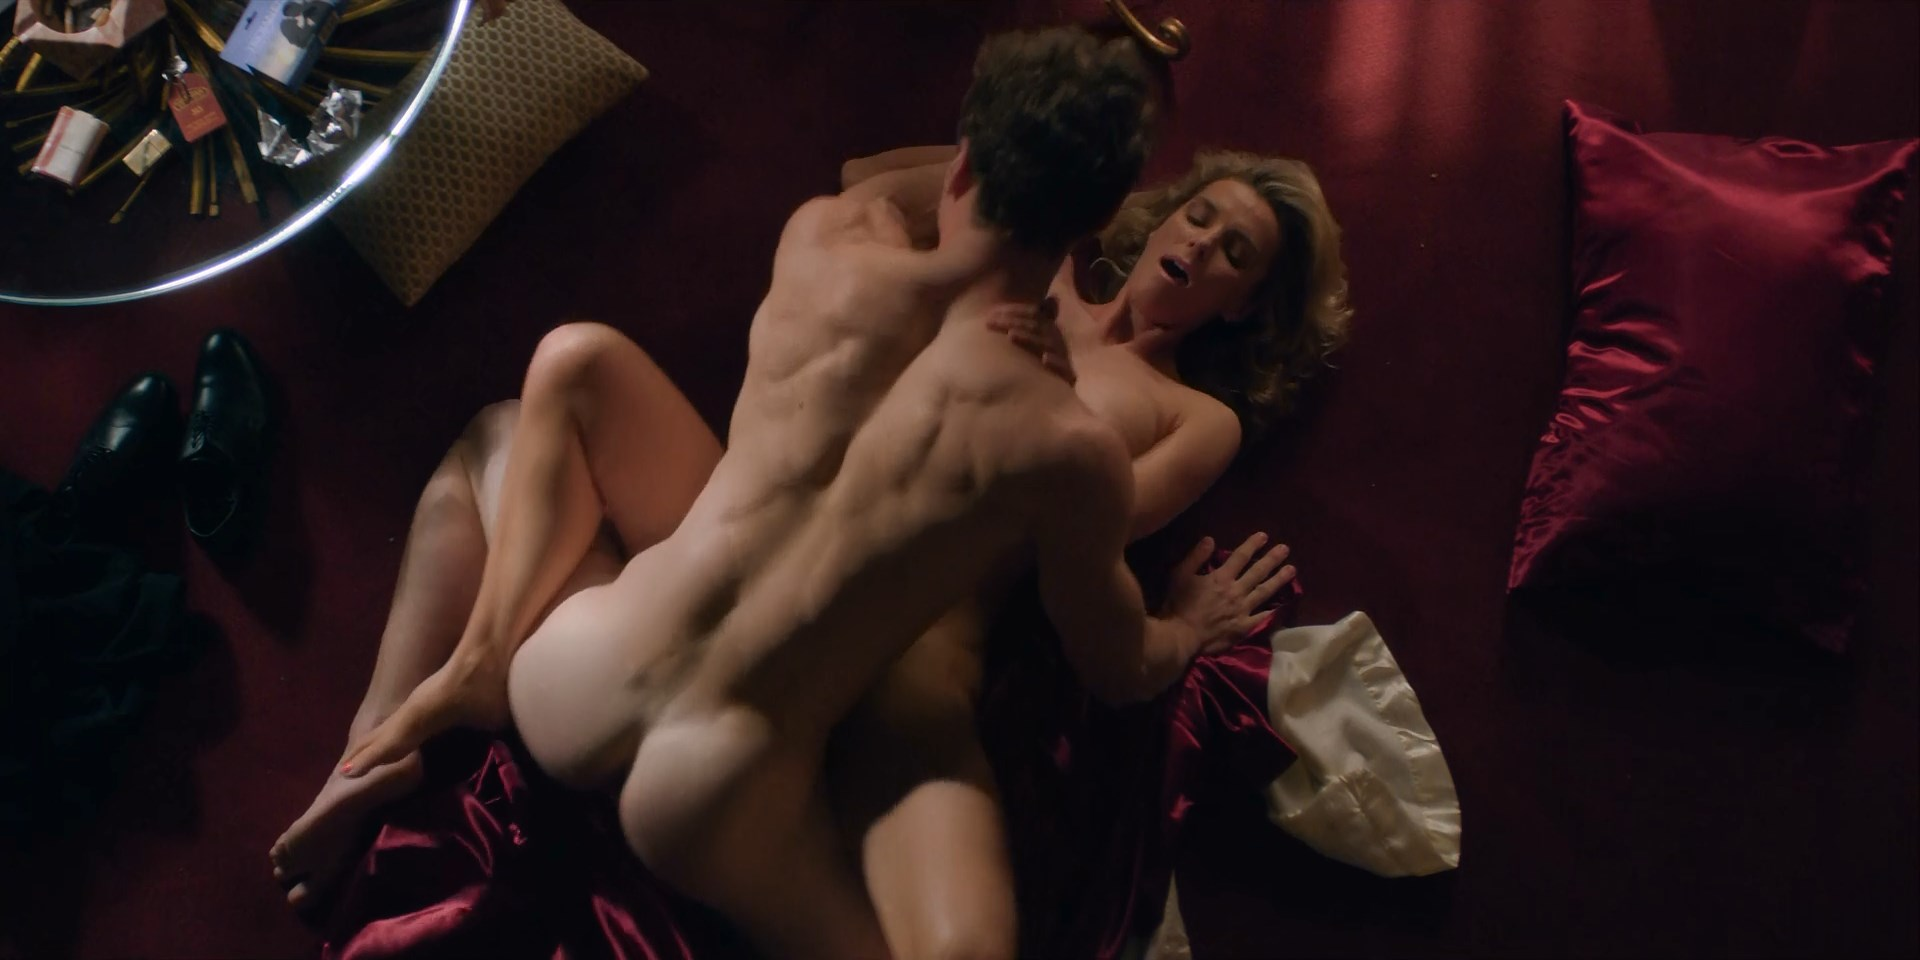 Alison Brie Nuda watch online - betty gilpin, alison brie - glow s03e04 (2019